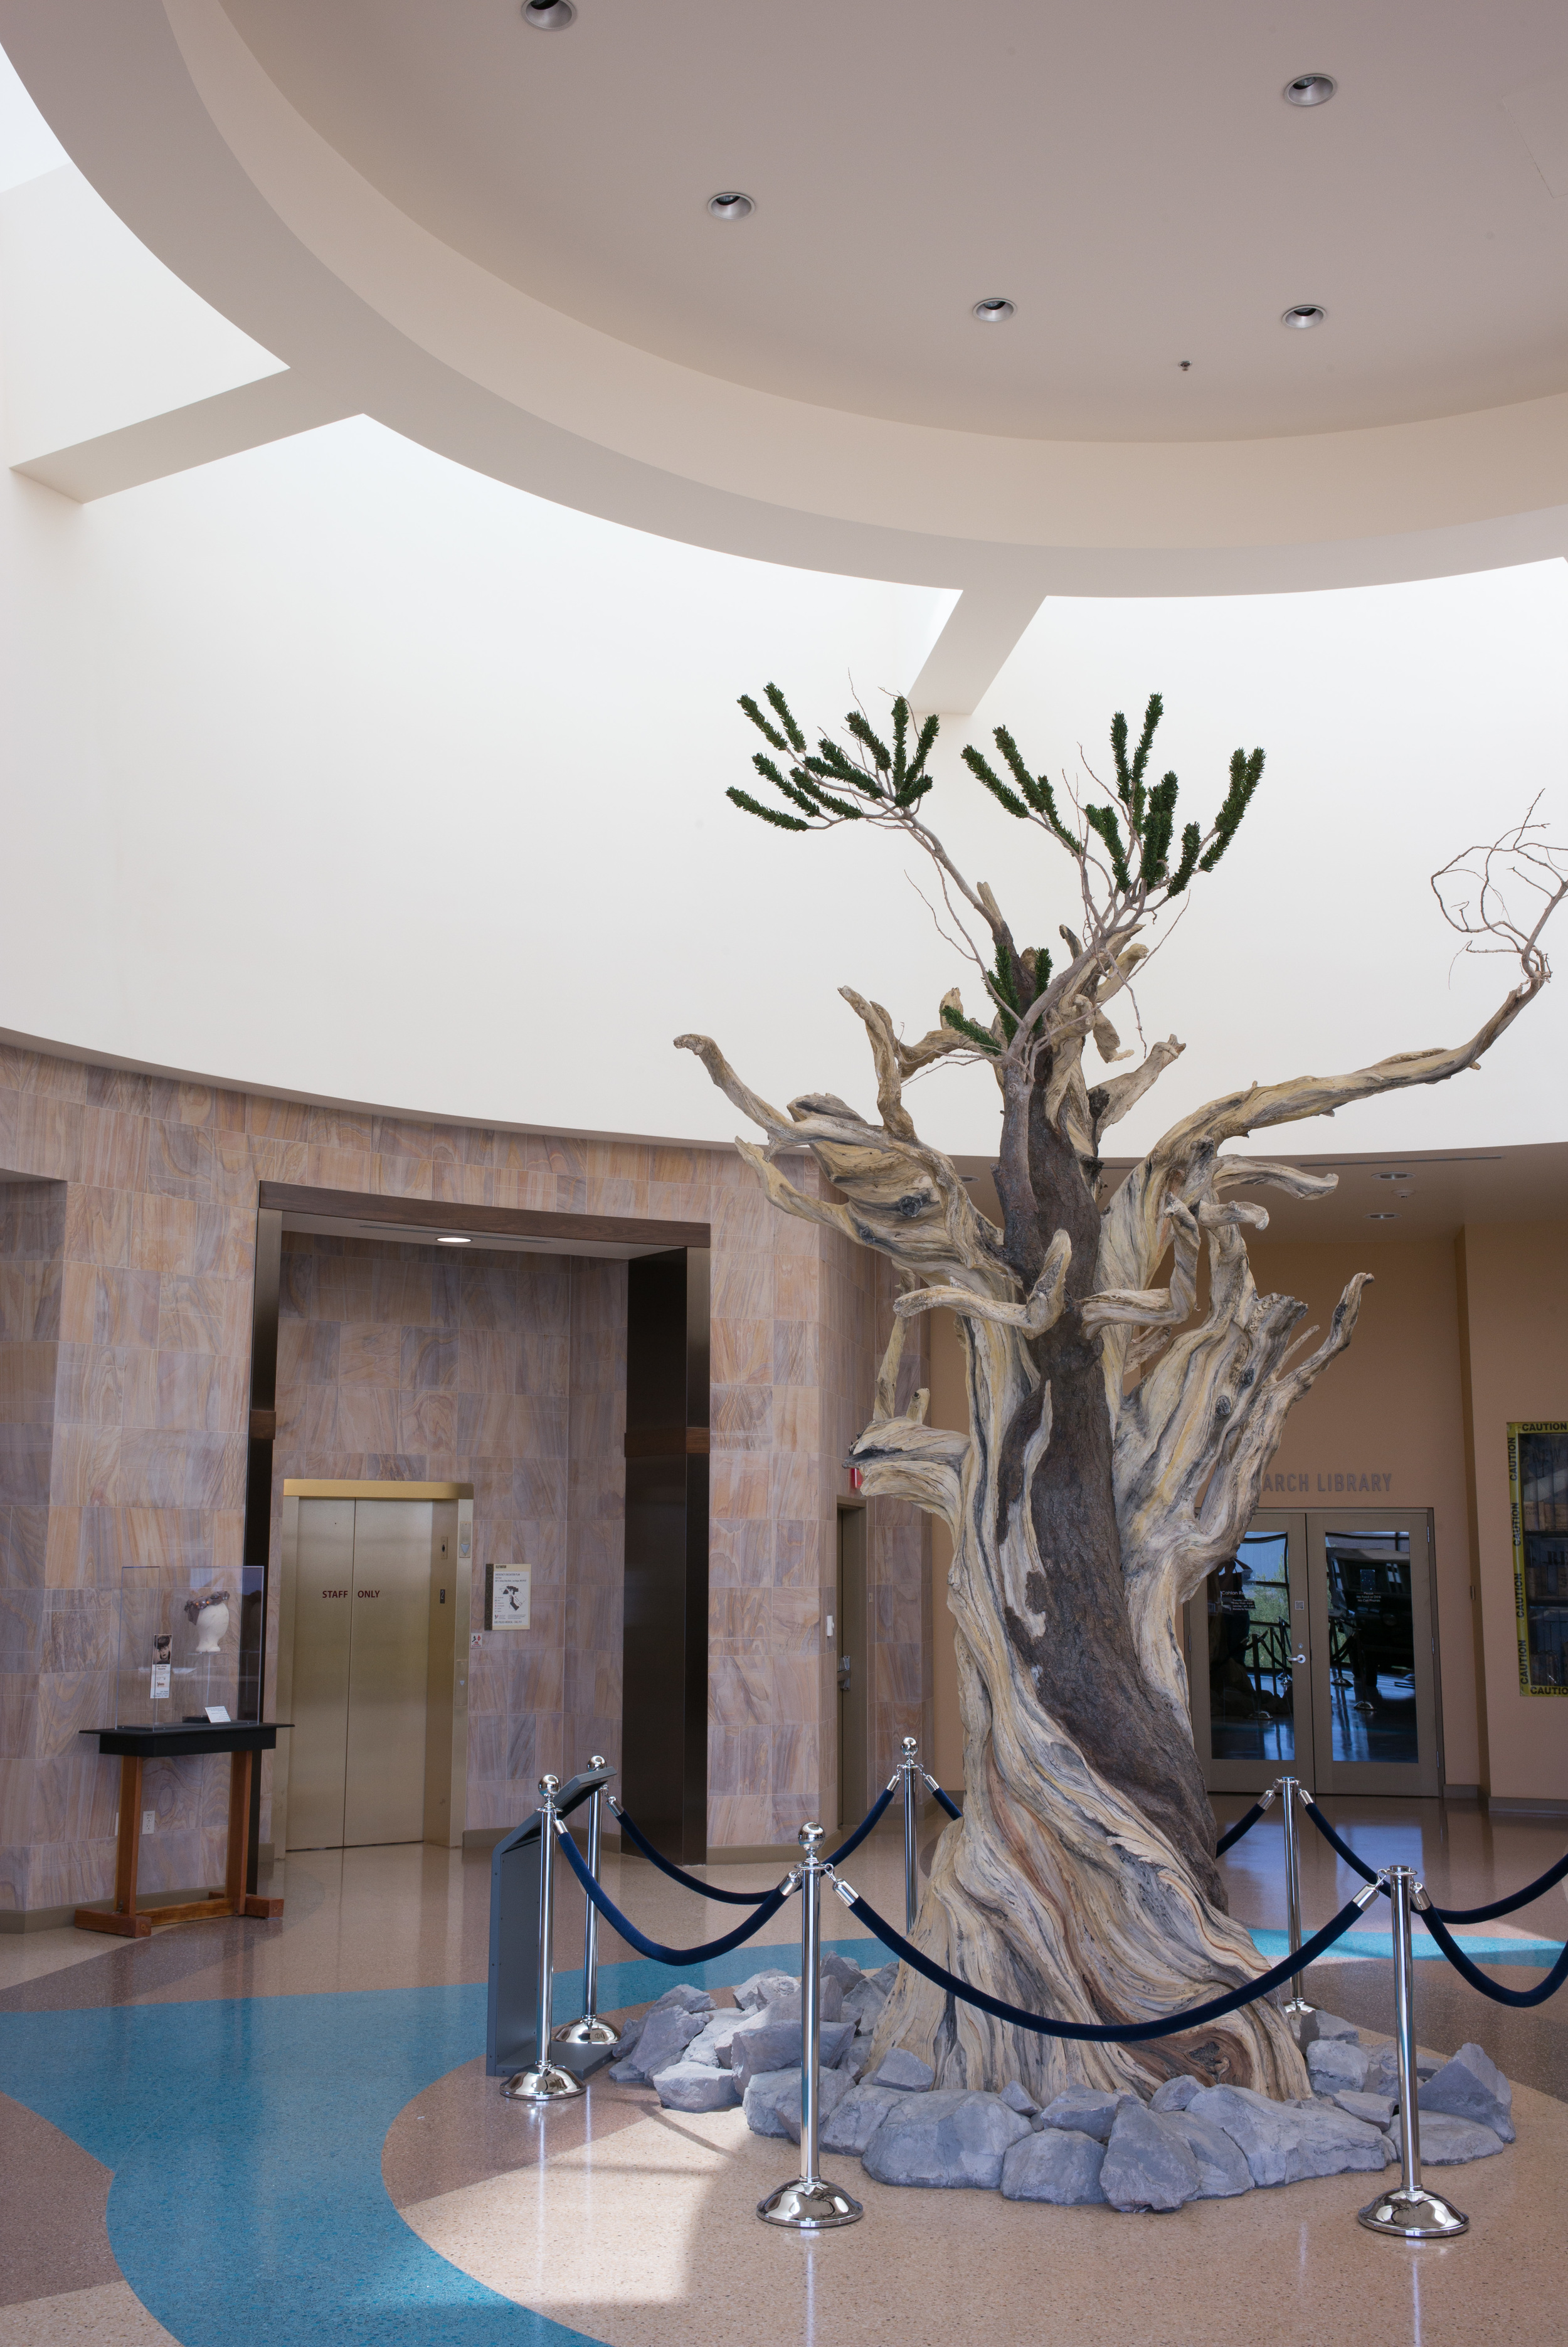 A bristlecone pine greets visitors entering the museum.